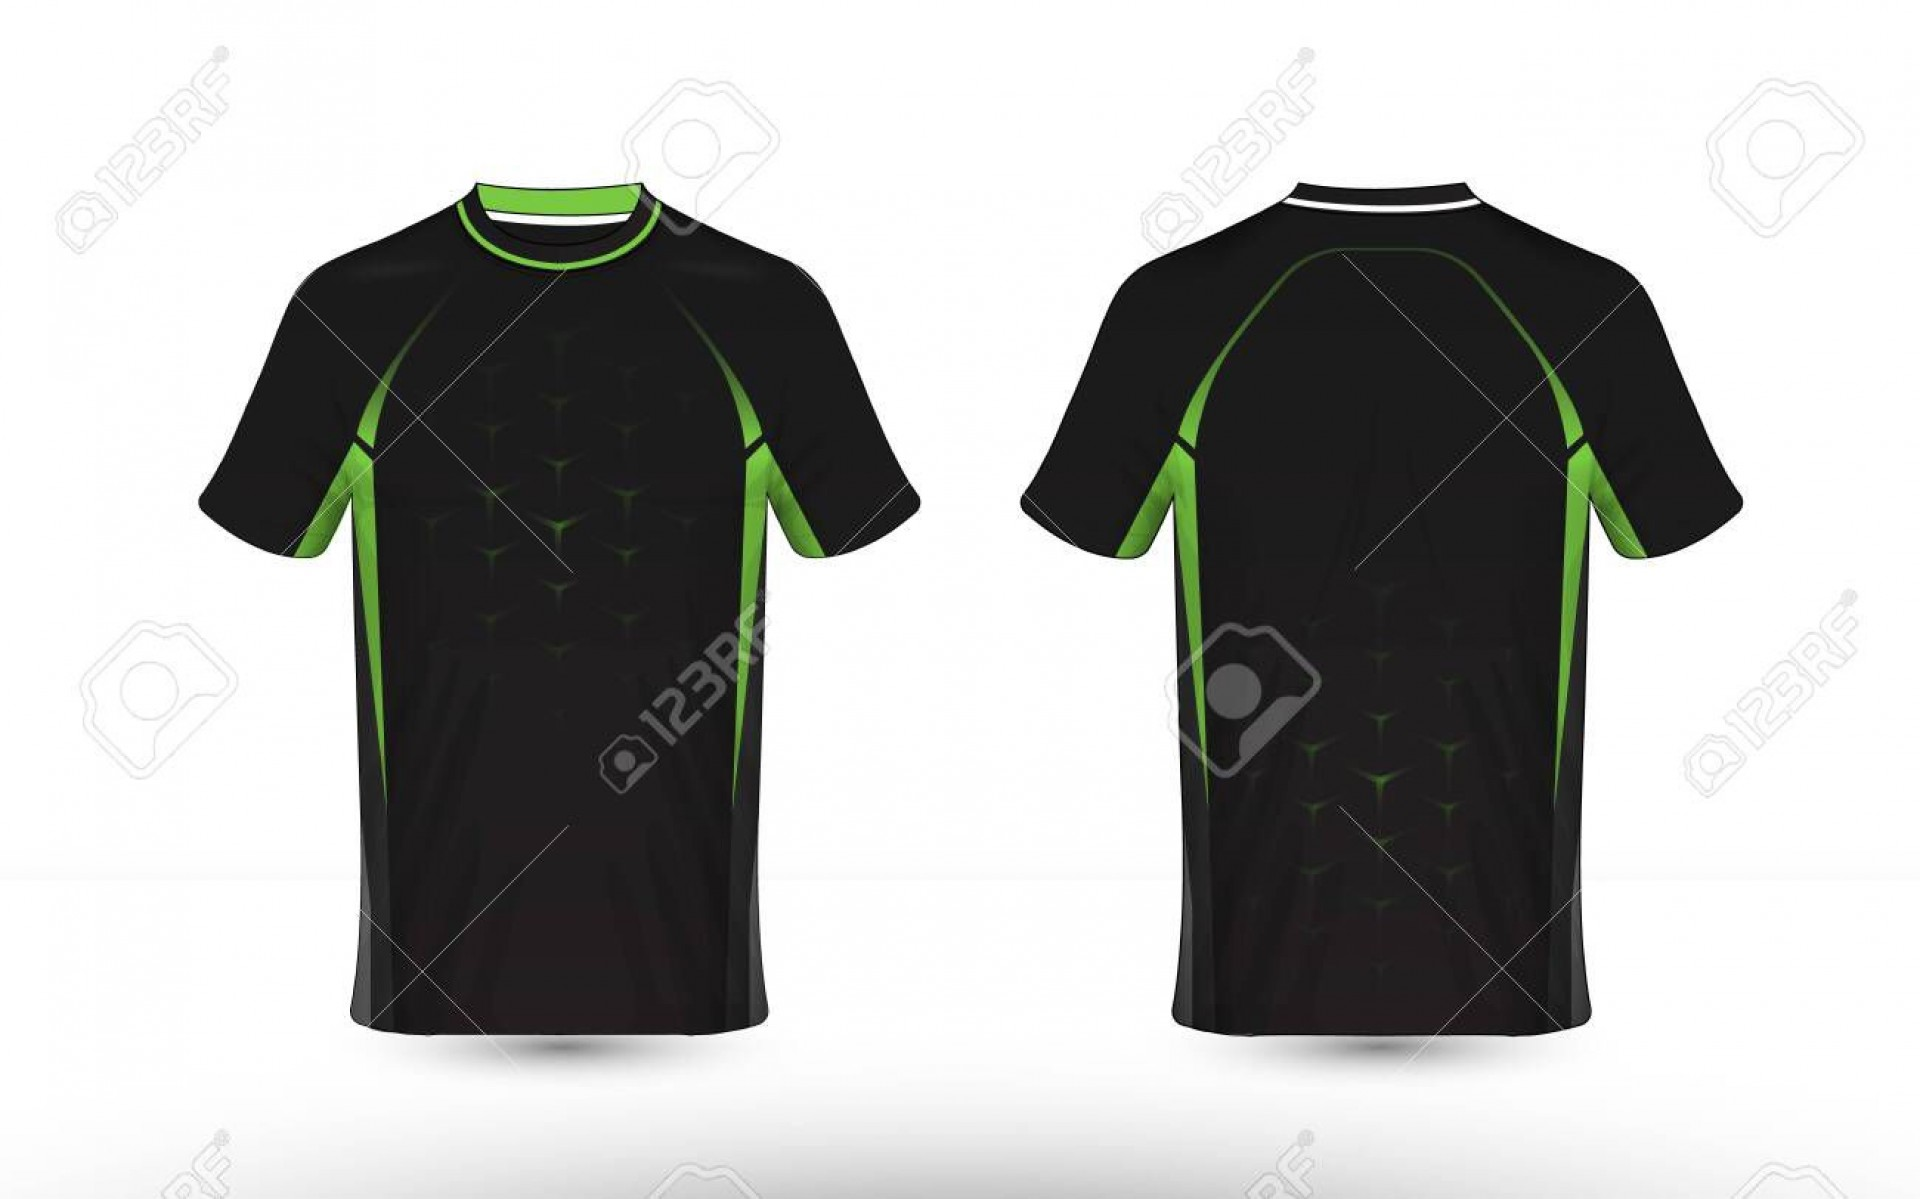 004 Simple Tee Shirt Design Template Concept  Templates T Illustrator Free Download Polo Psd1920